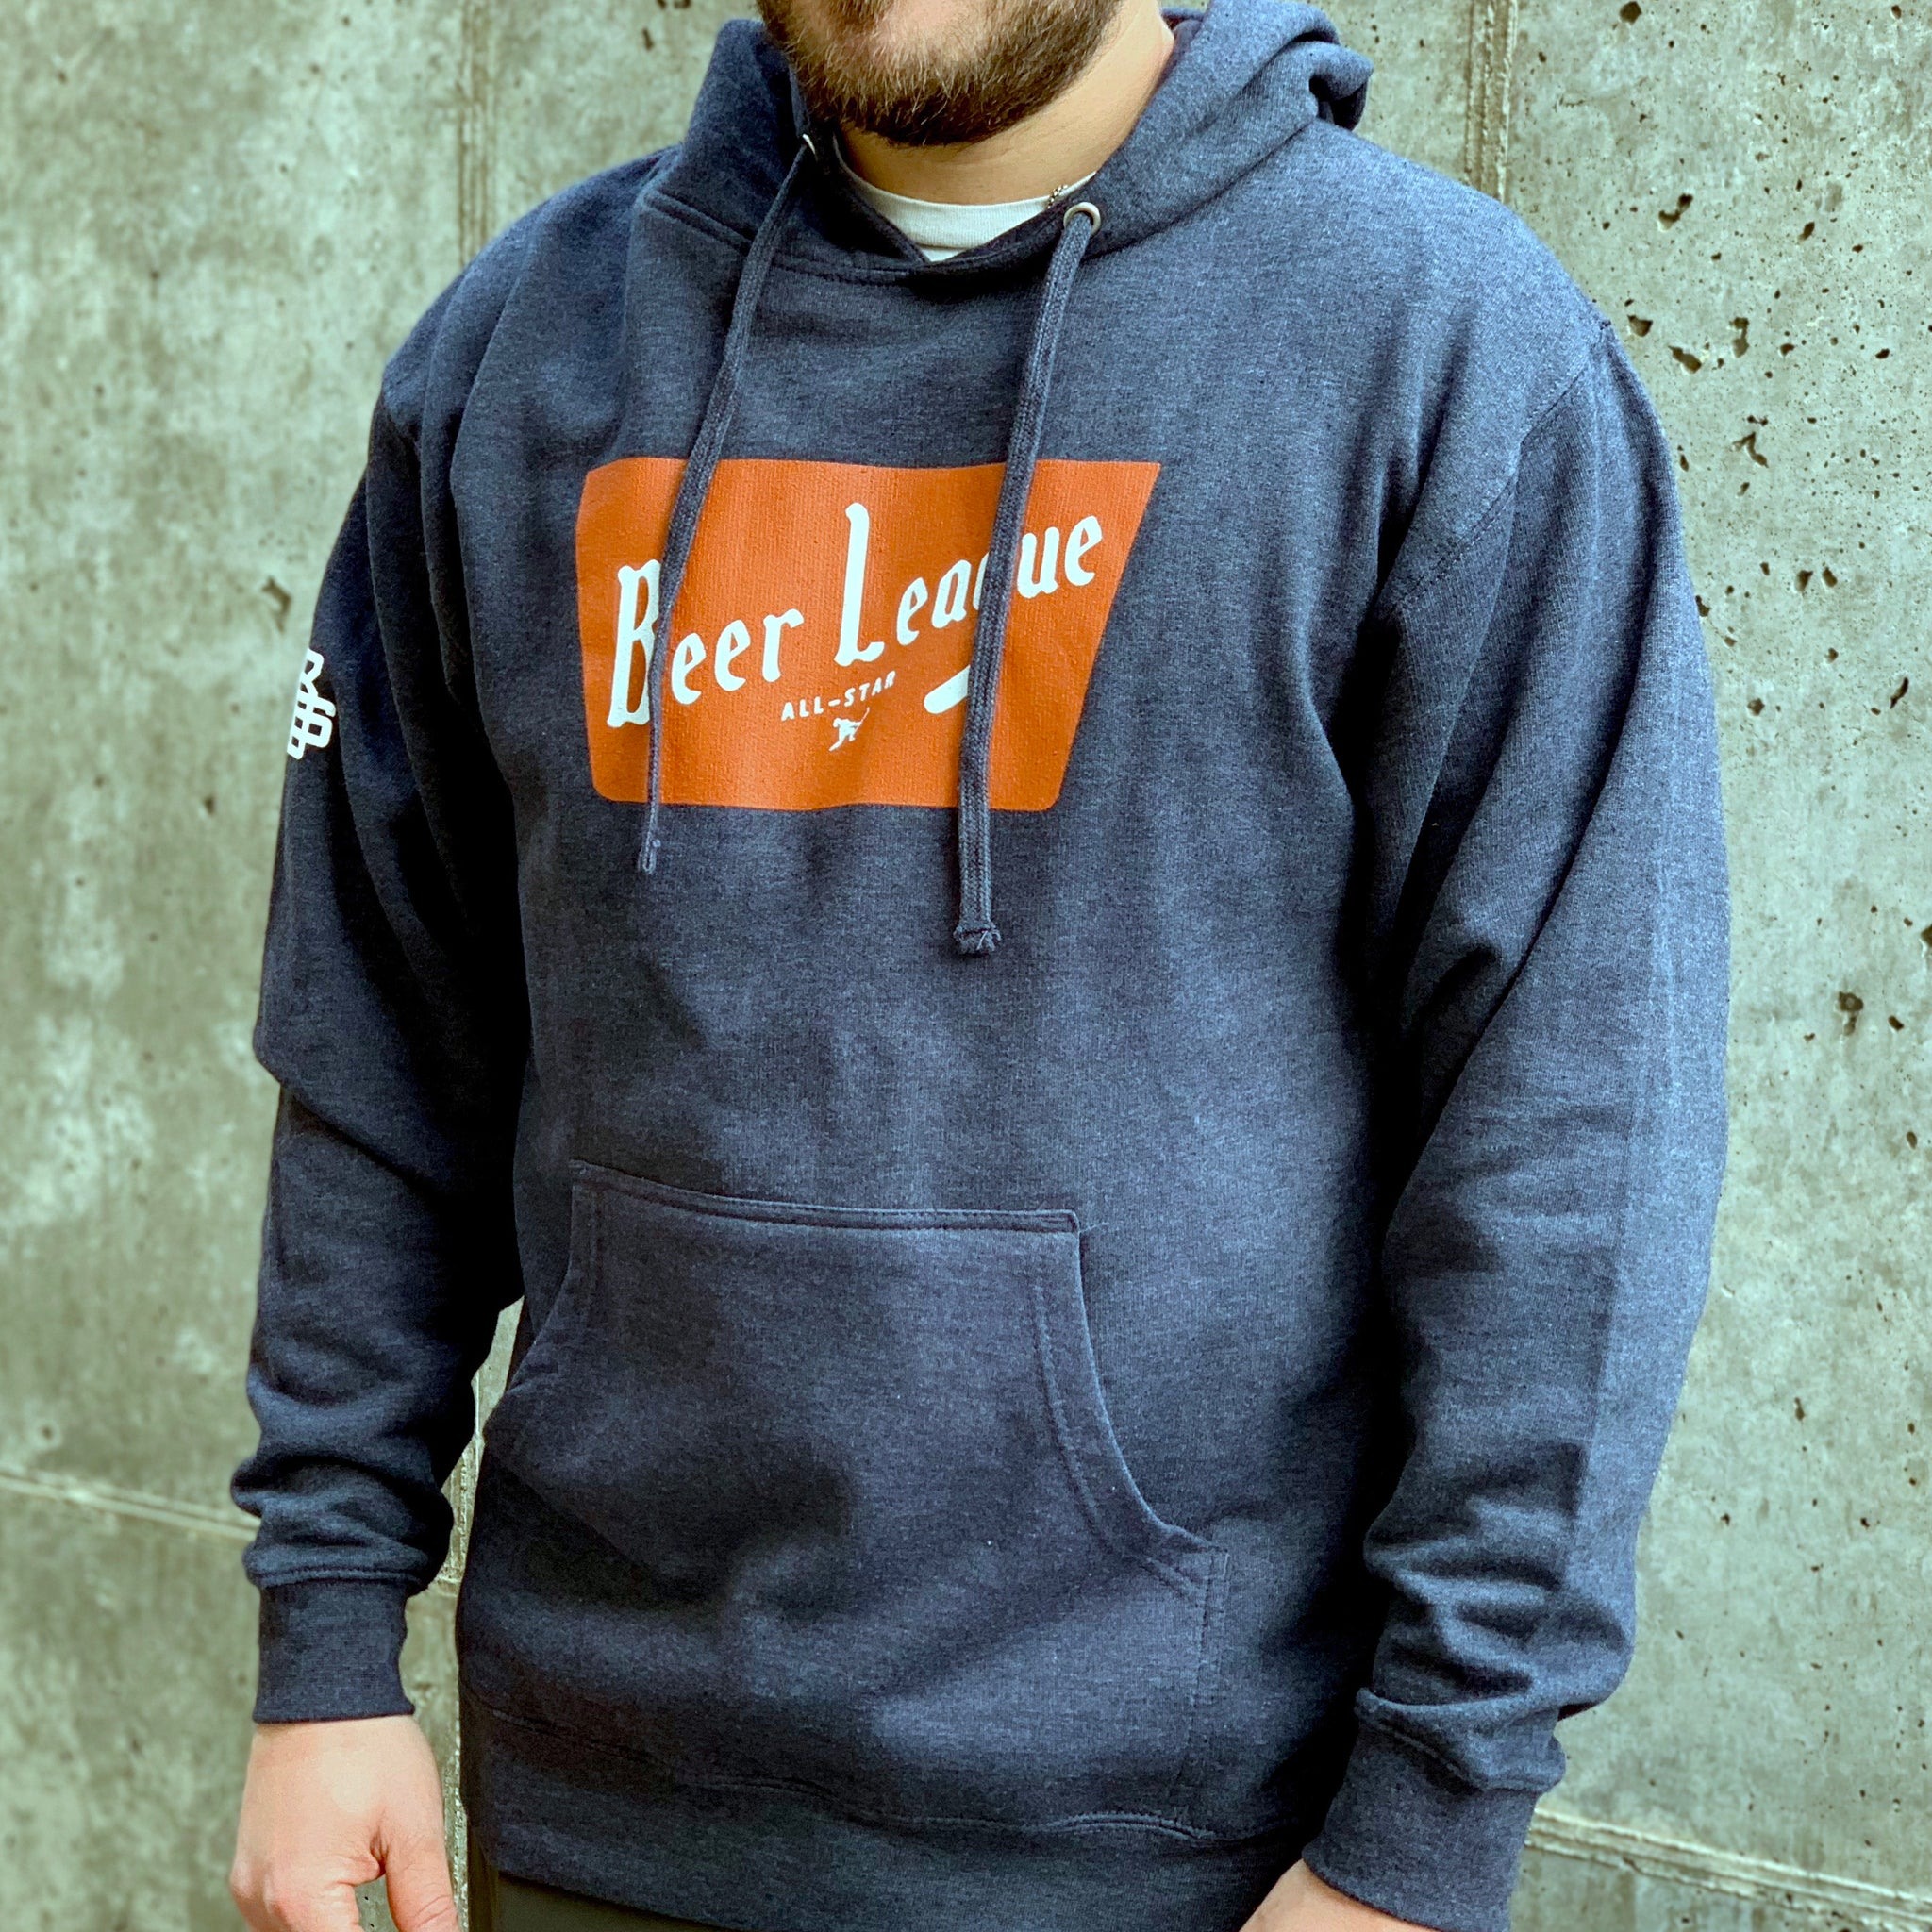 Beer League All-Star *Fleece (Heather Navy) - Beauty Status Hockey Co.